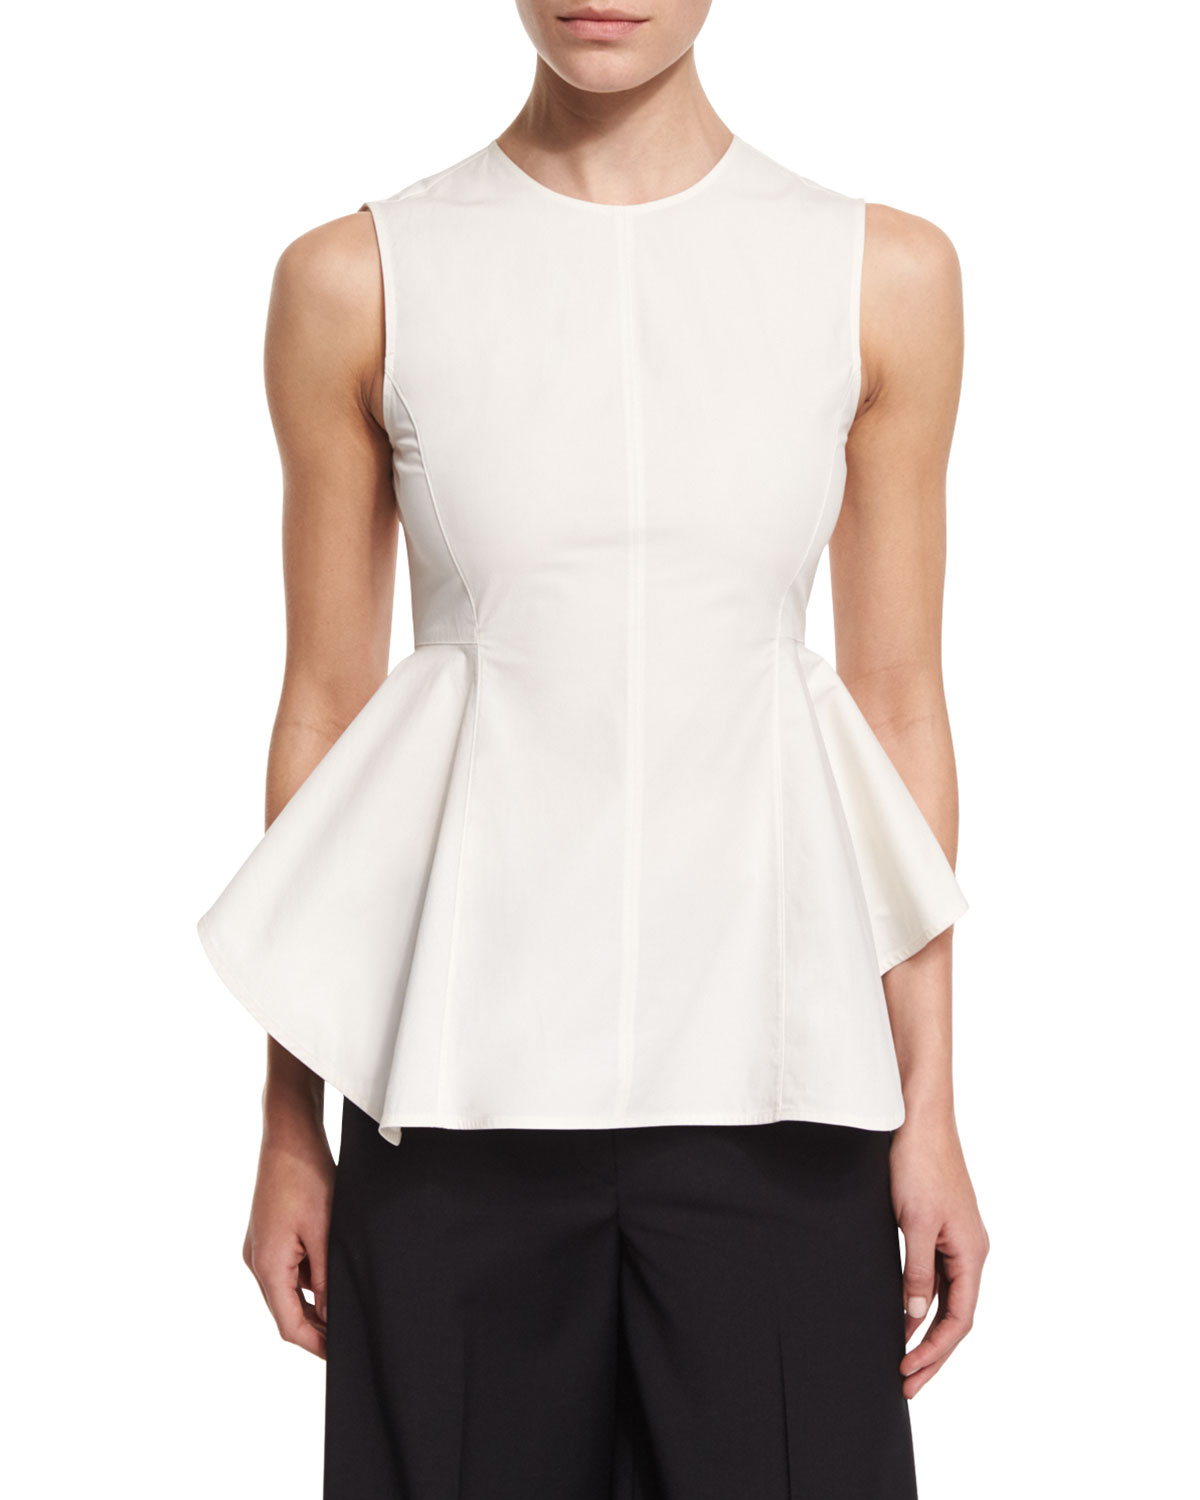 Kalsing Light Sculptural Peplum Top